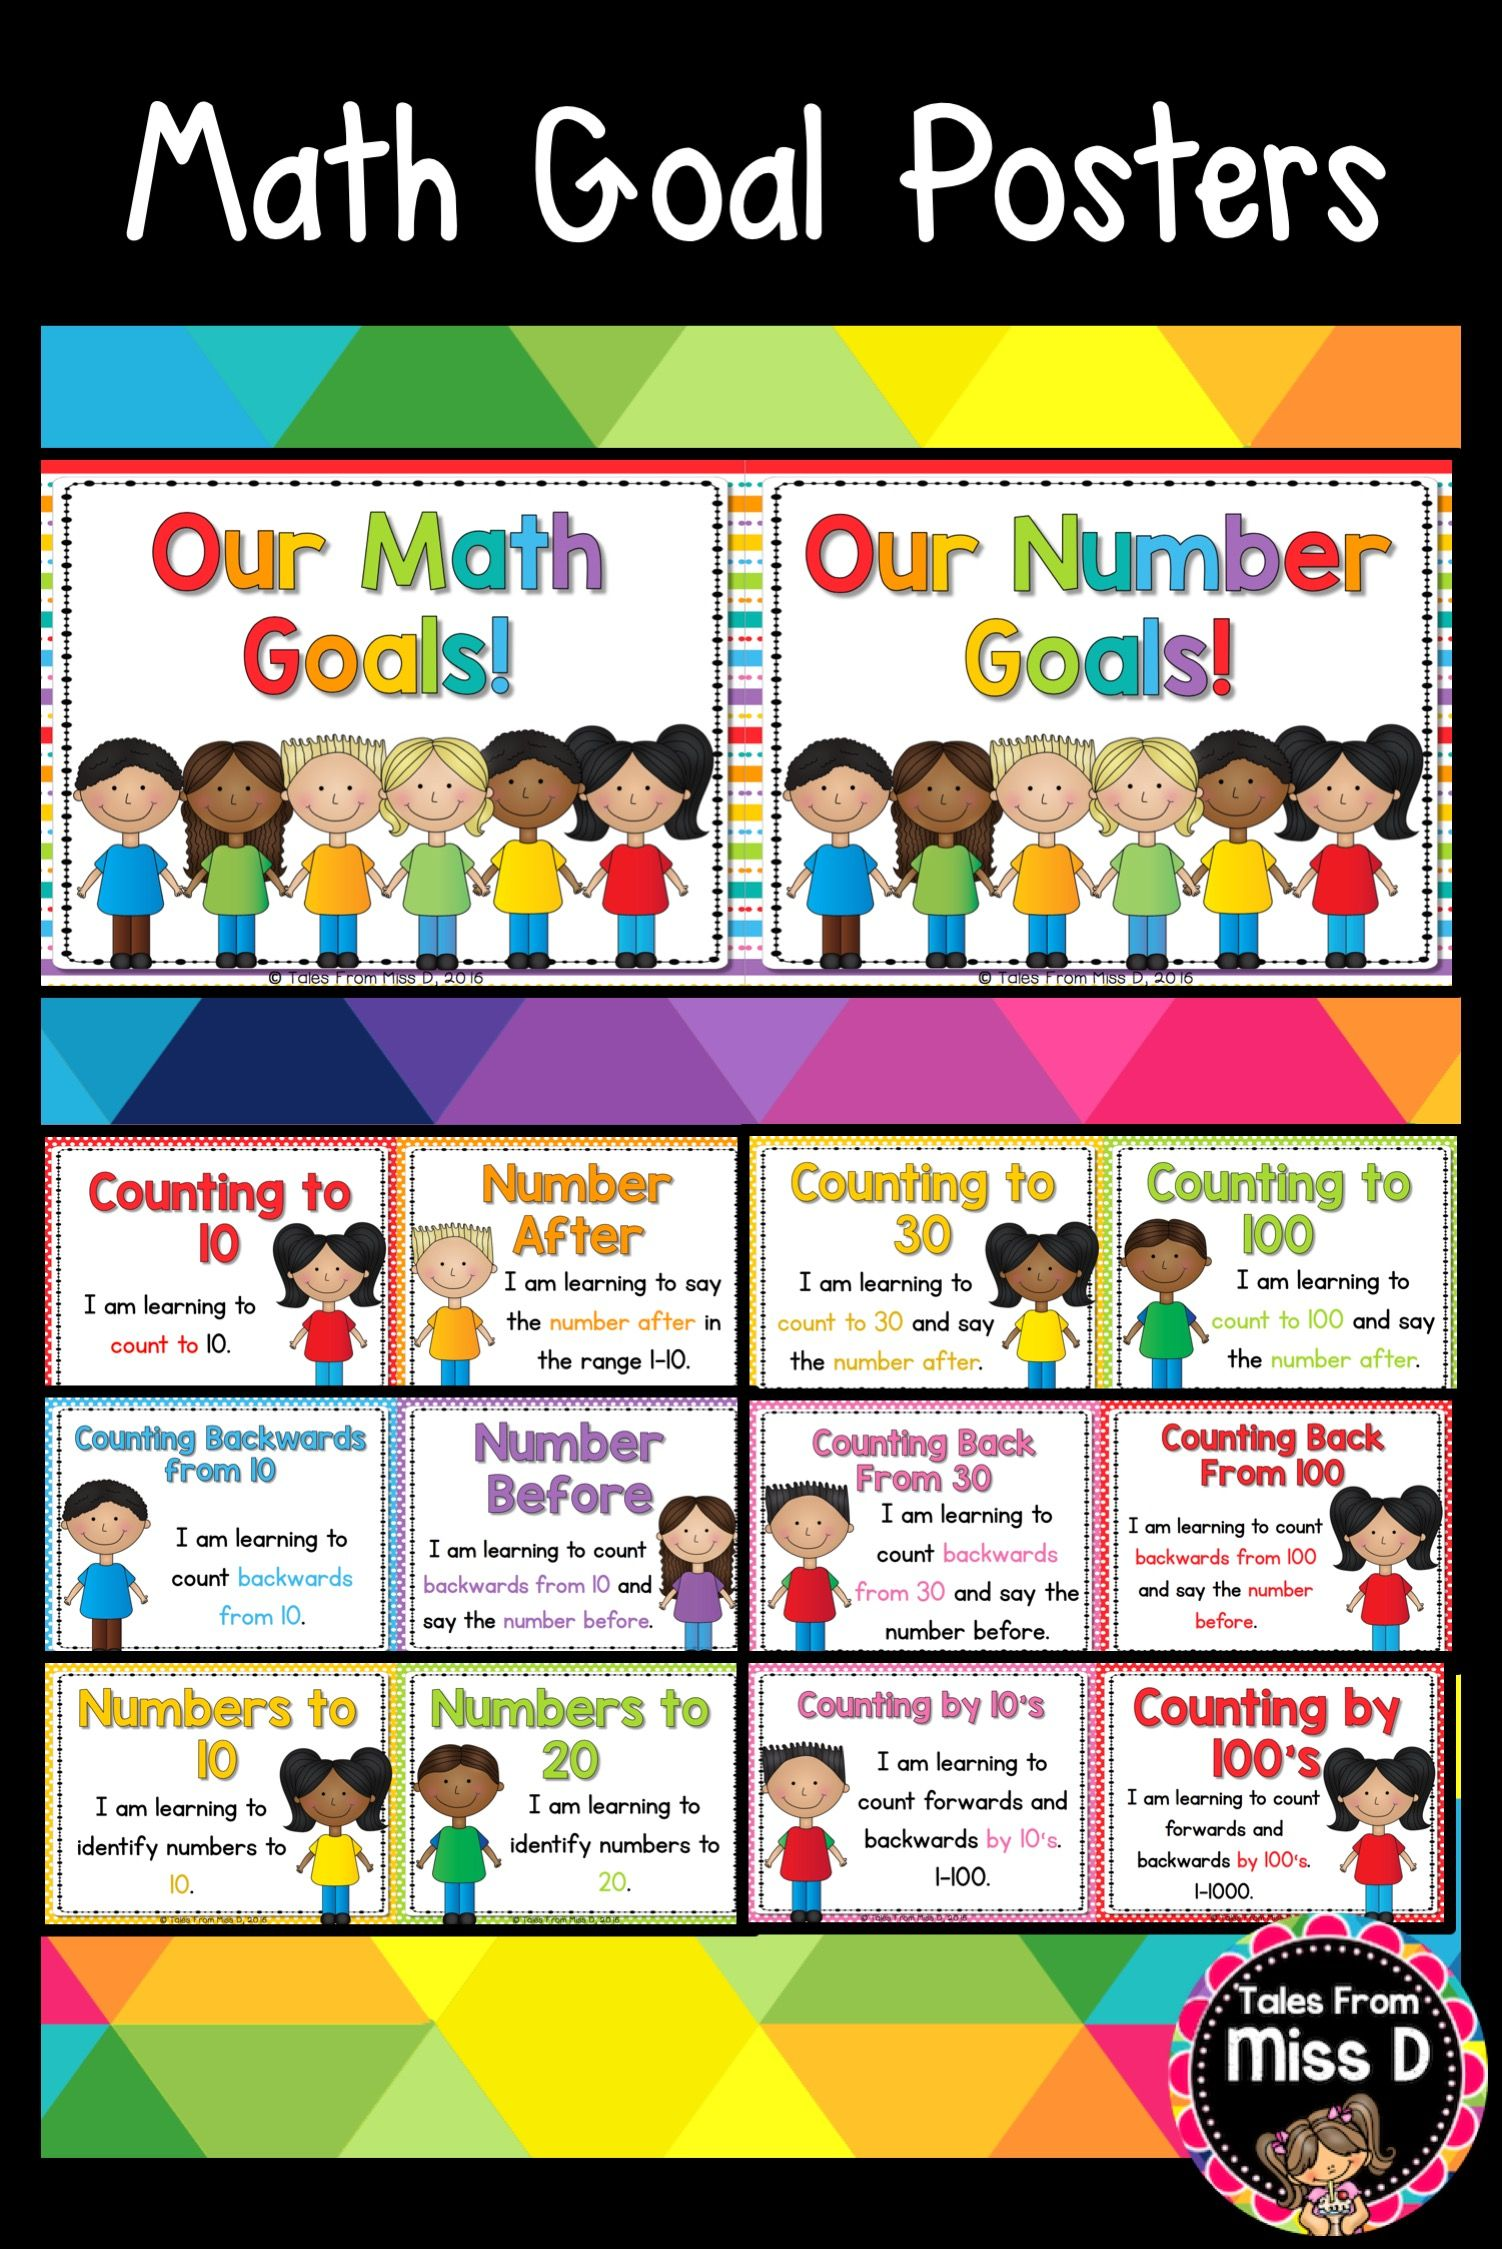 Set Up And Display Math Goals In Your Classroom With This Bright And Colourful Display The Goals Are Divided Into 5 Areas Math Learning Goals Visible Learning